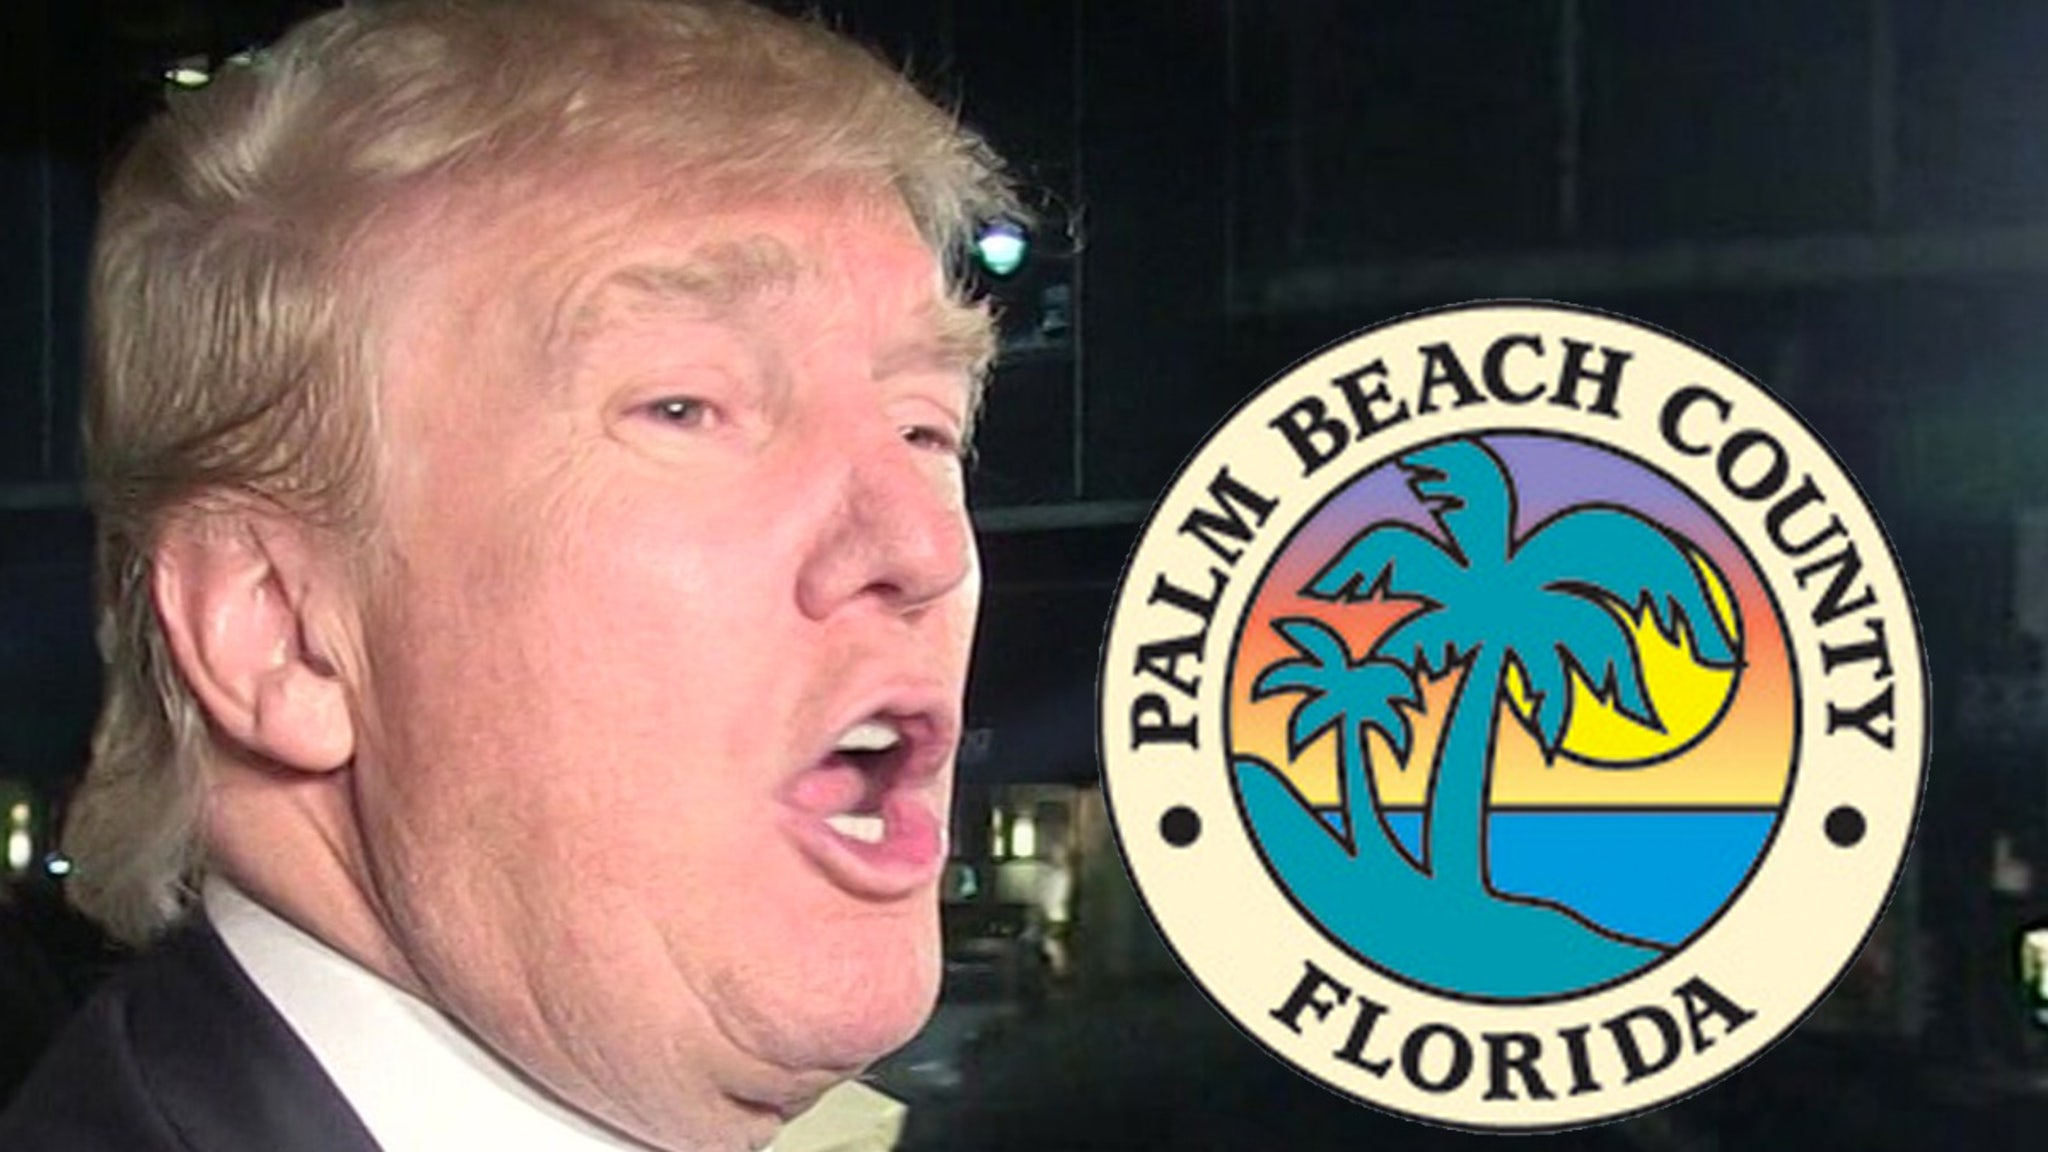 Dems in Palm Beach County Fear the 'Trump Effect' thumbnail